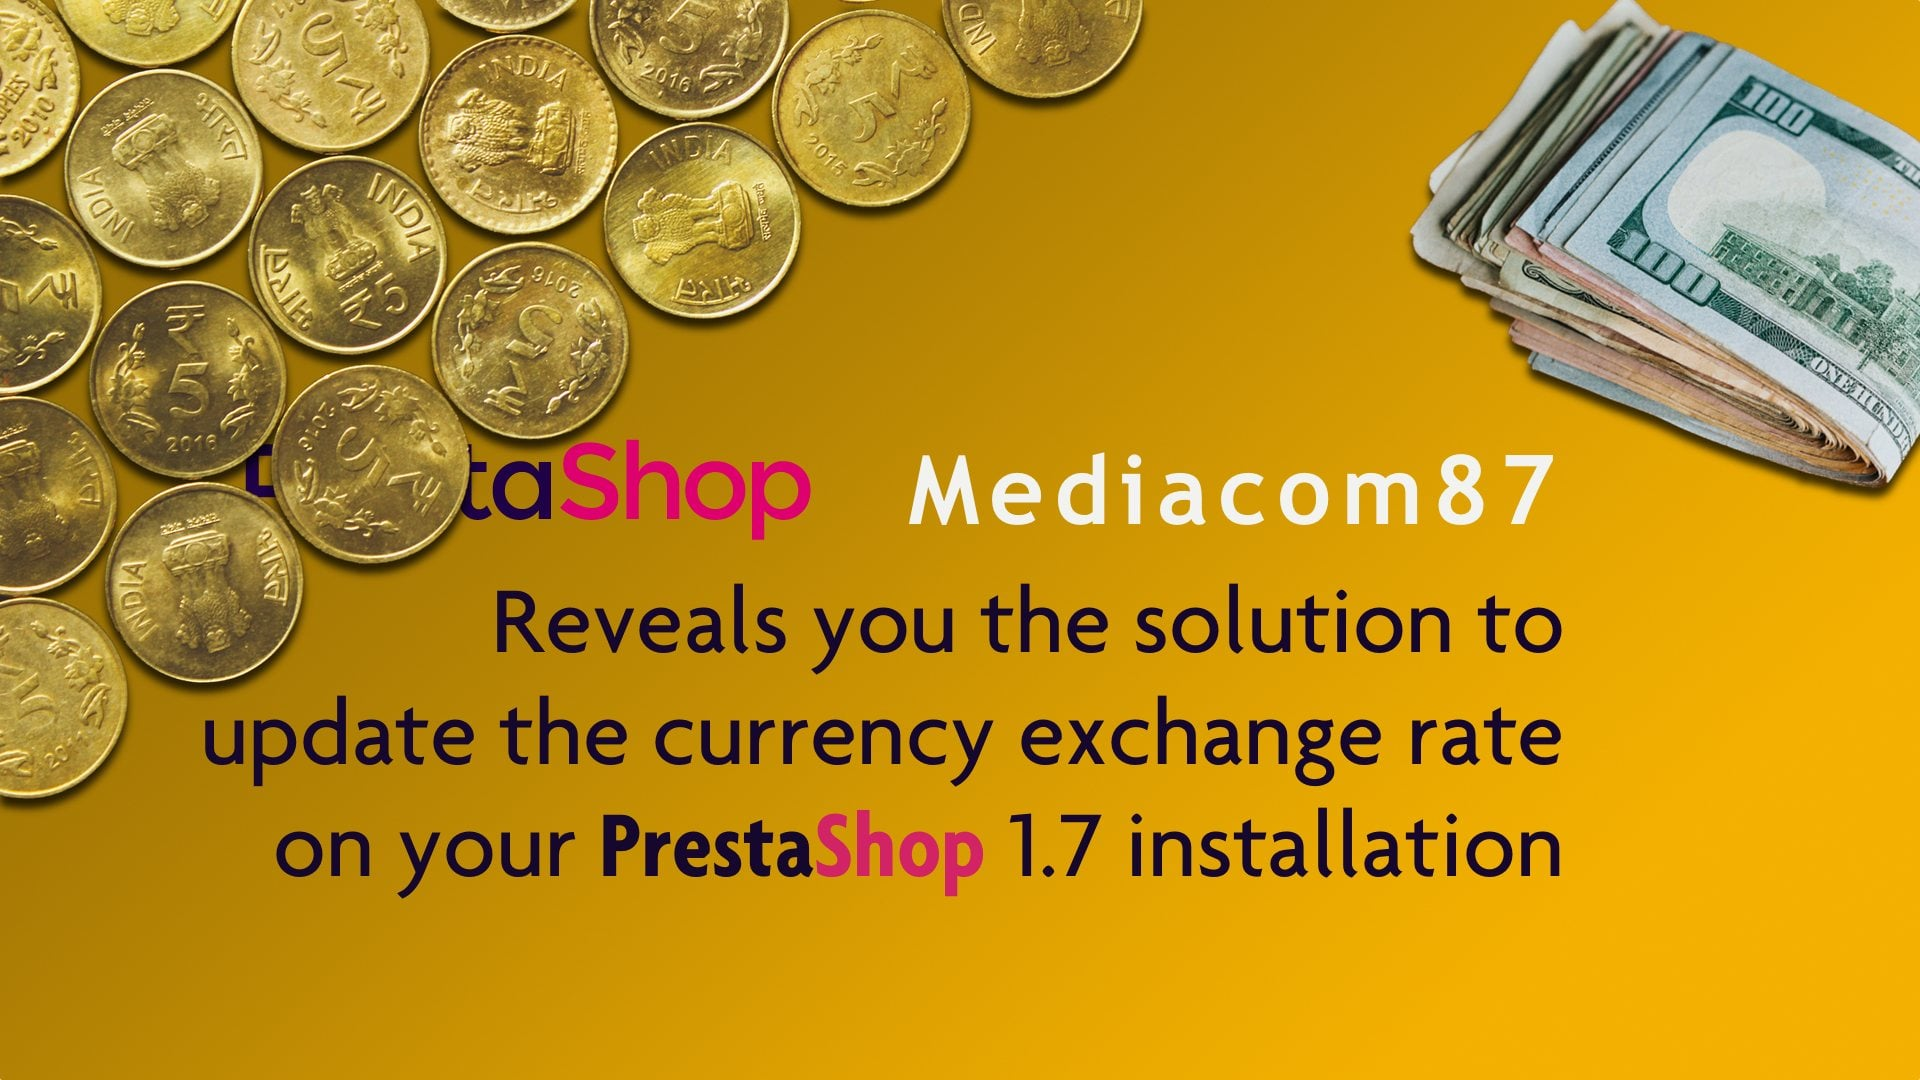 Mediacom87 Reveals you the solution to update the currency exchange rate on your PrestaShop 1.7 installation